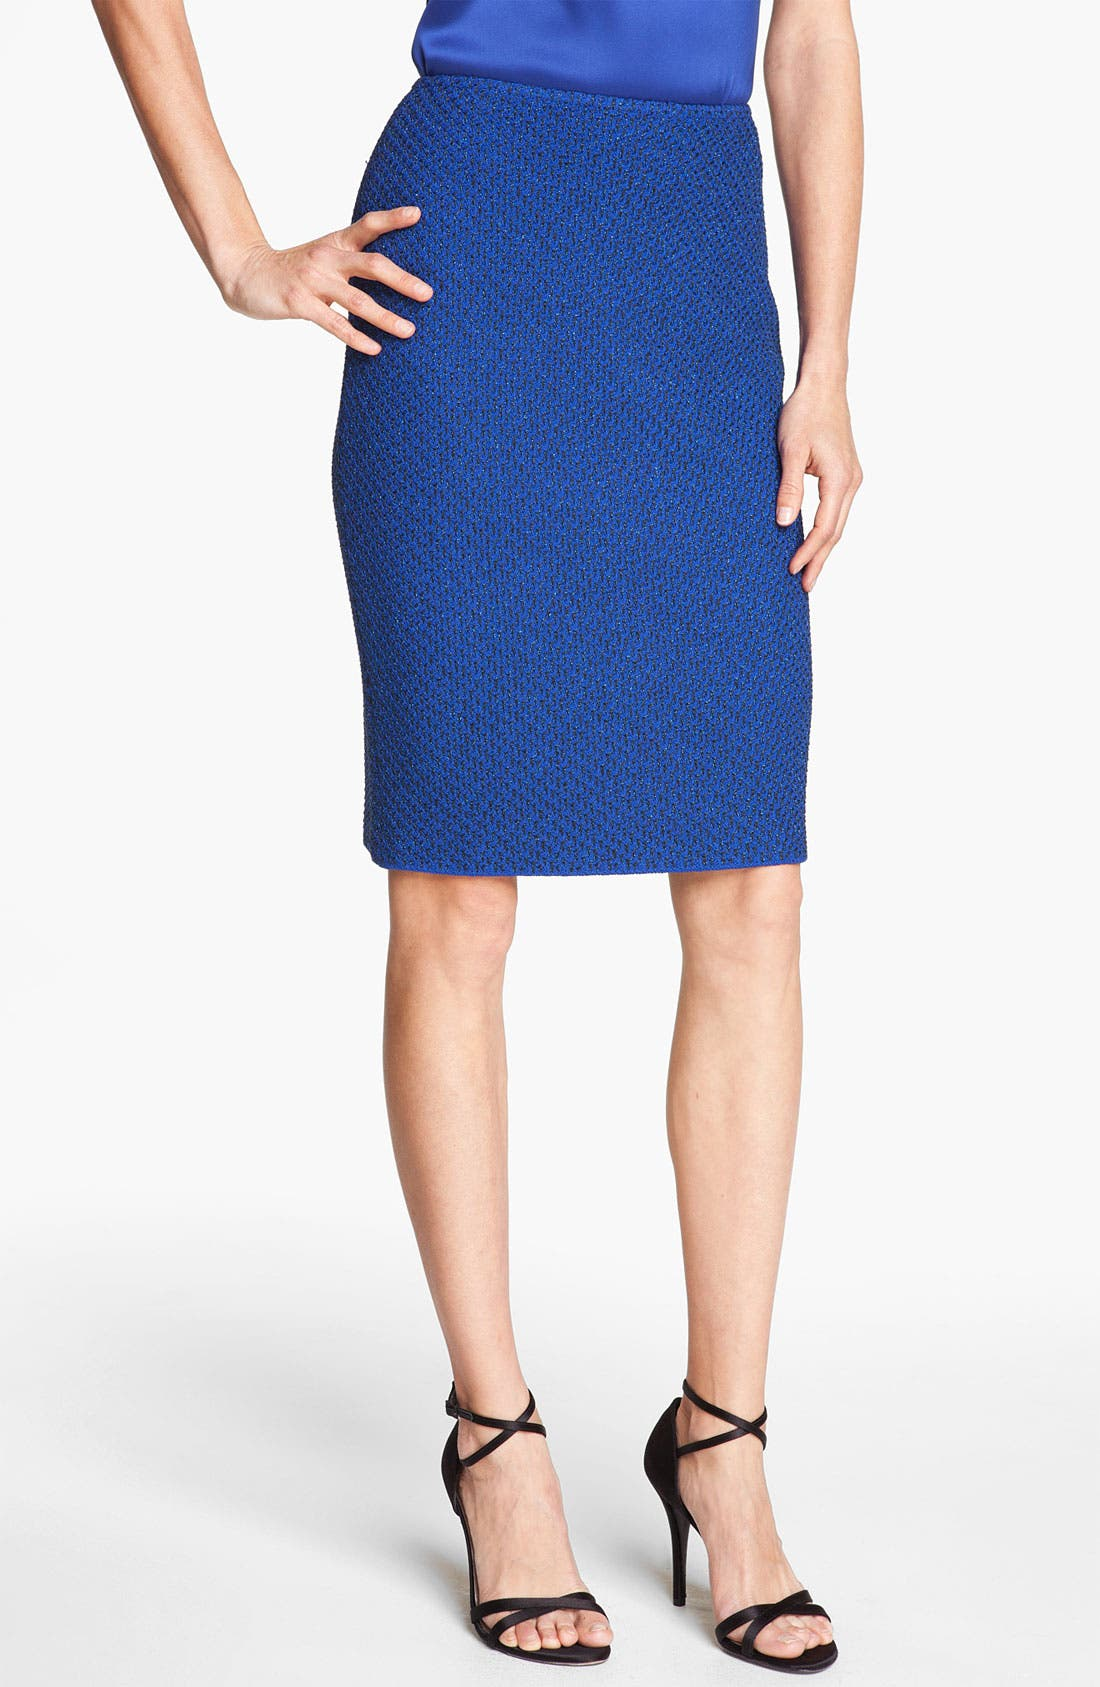 Alternate Image 1 Selected - St. John Collection Ivy Tweed Pencil Skirt